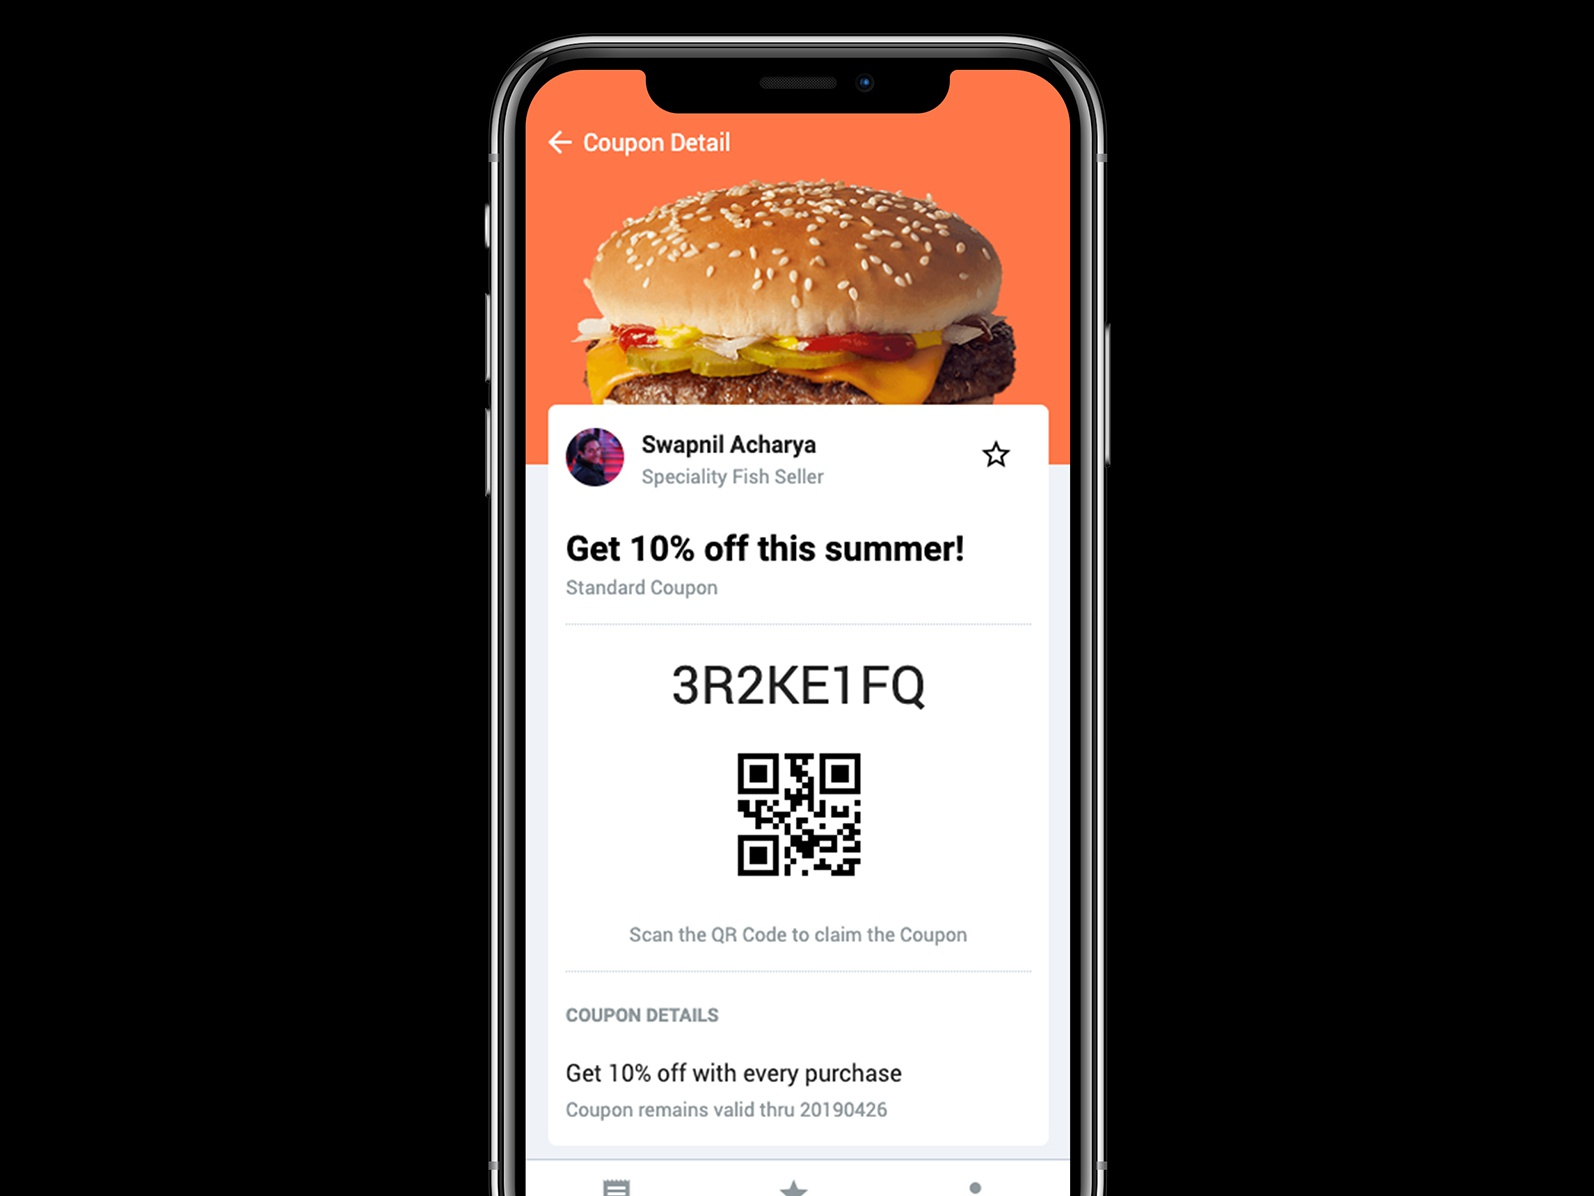 Have some cheeseburger scan qr code deals coupons mobile notch ios12 ios app iphone app mobile app ios cheese burger